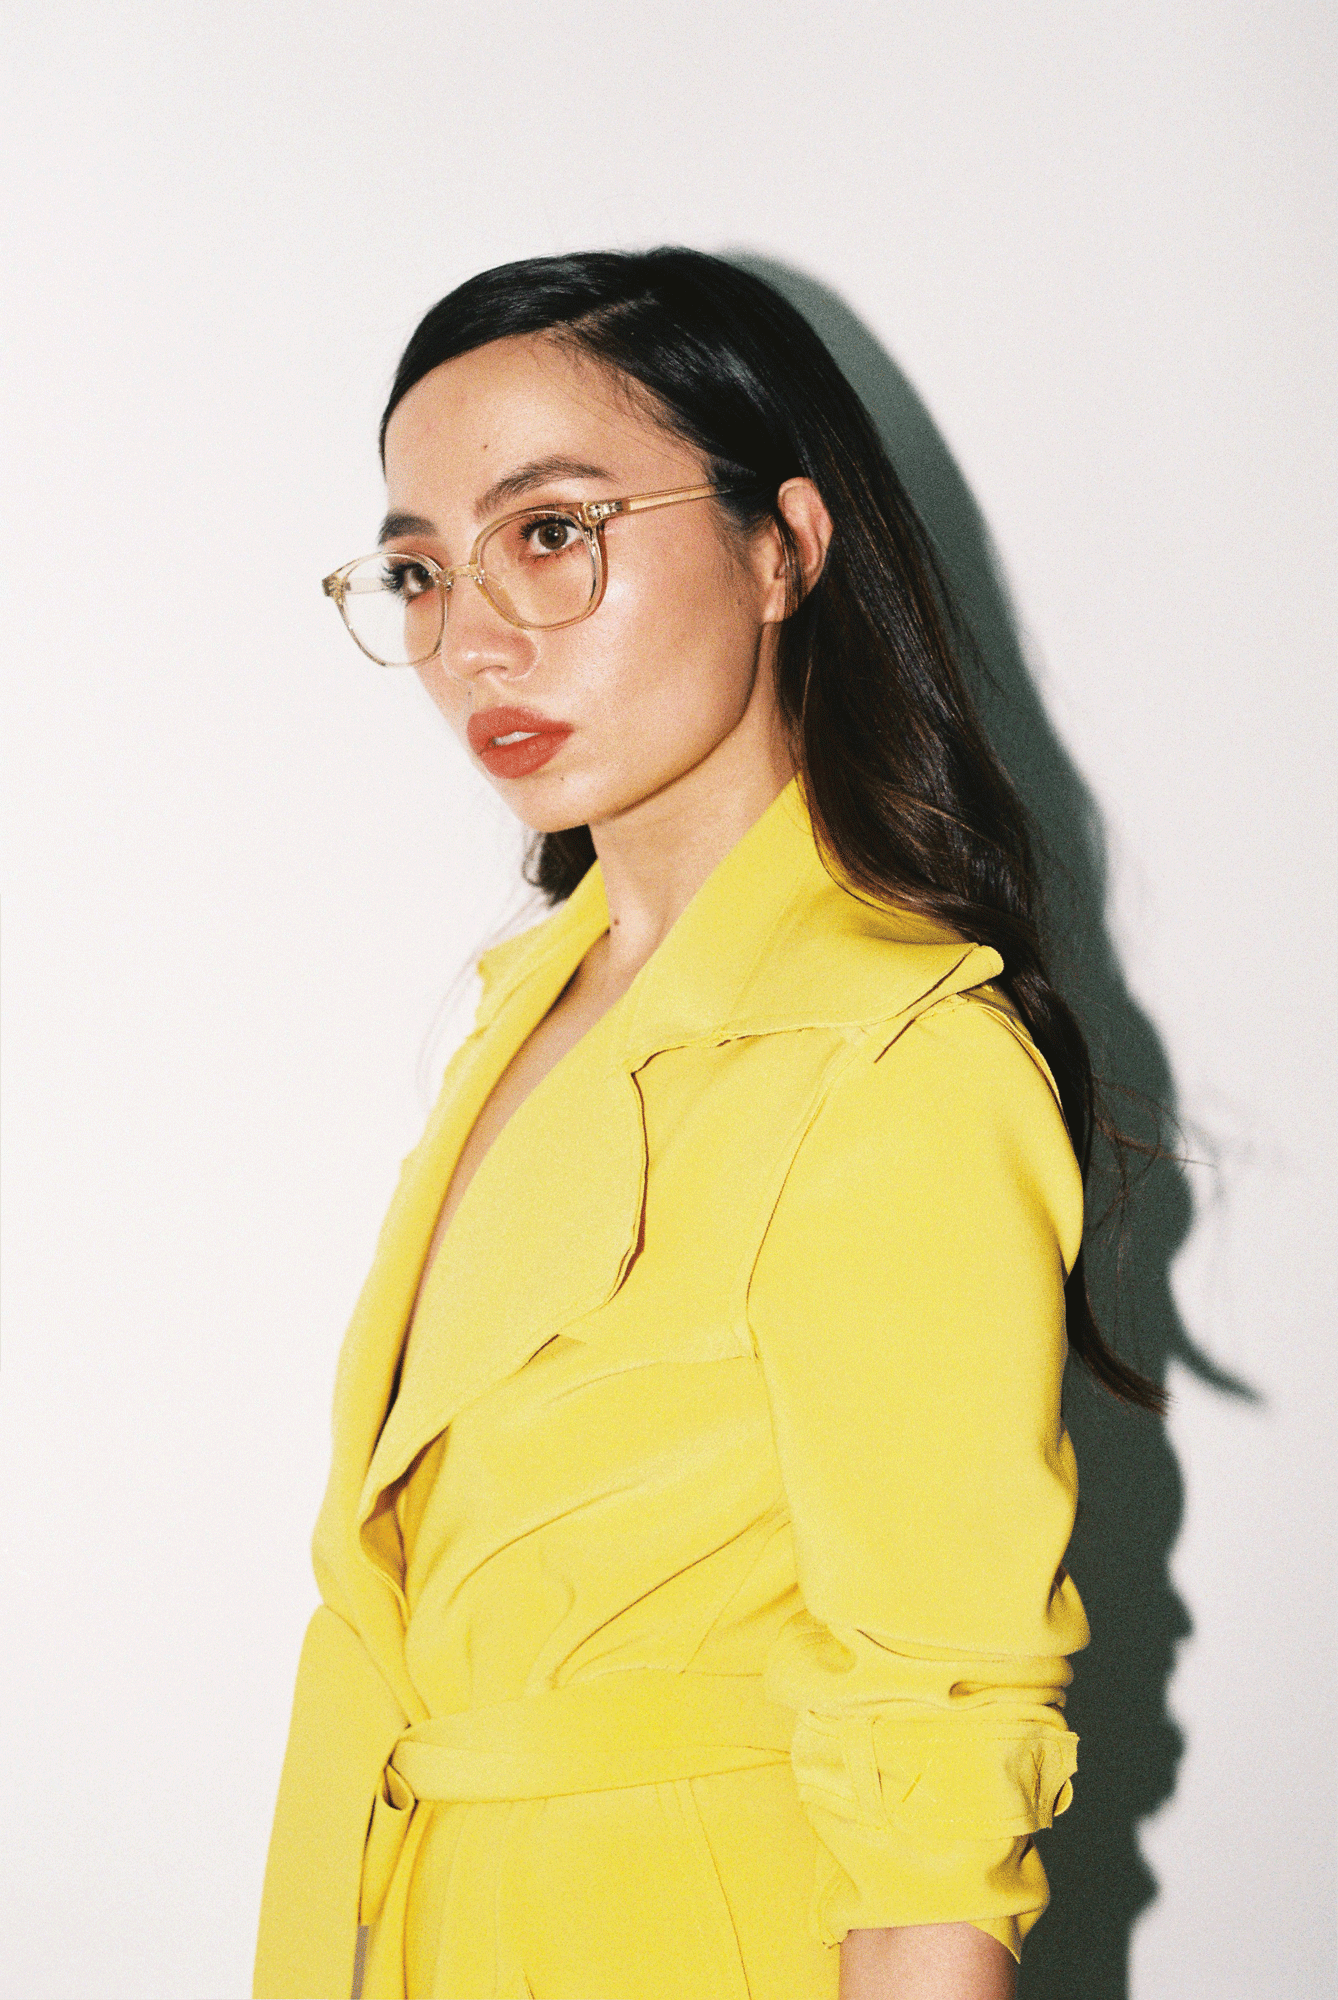 What Matters To Me: Martine Ho, Creative Director Of Sunnies Studios